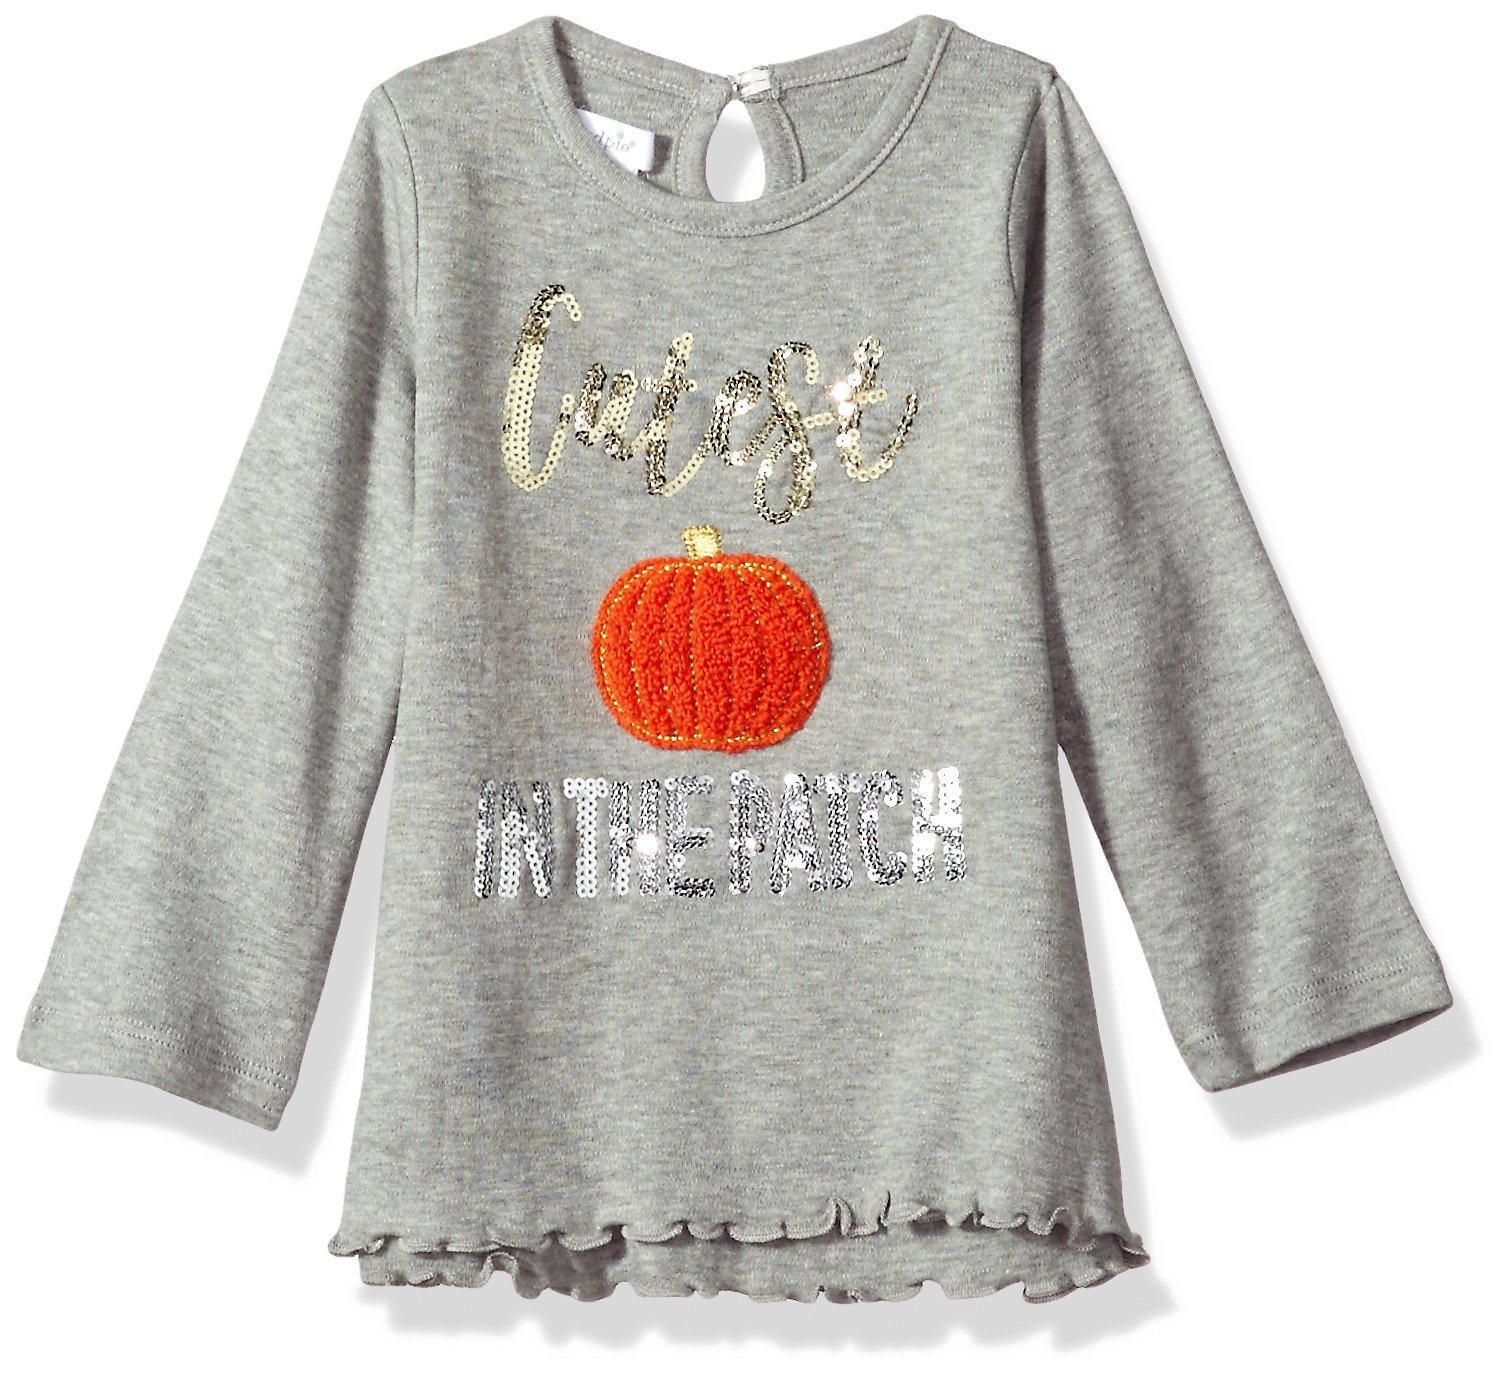 Mud Pie Baby Girls' Toddler Halloween Long Sleeve Tunic, Gray Pumpkin, LG/ 4T-5T by Mud Pie